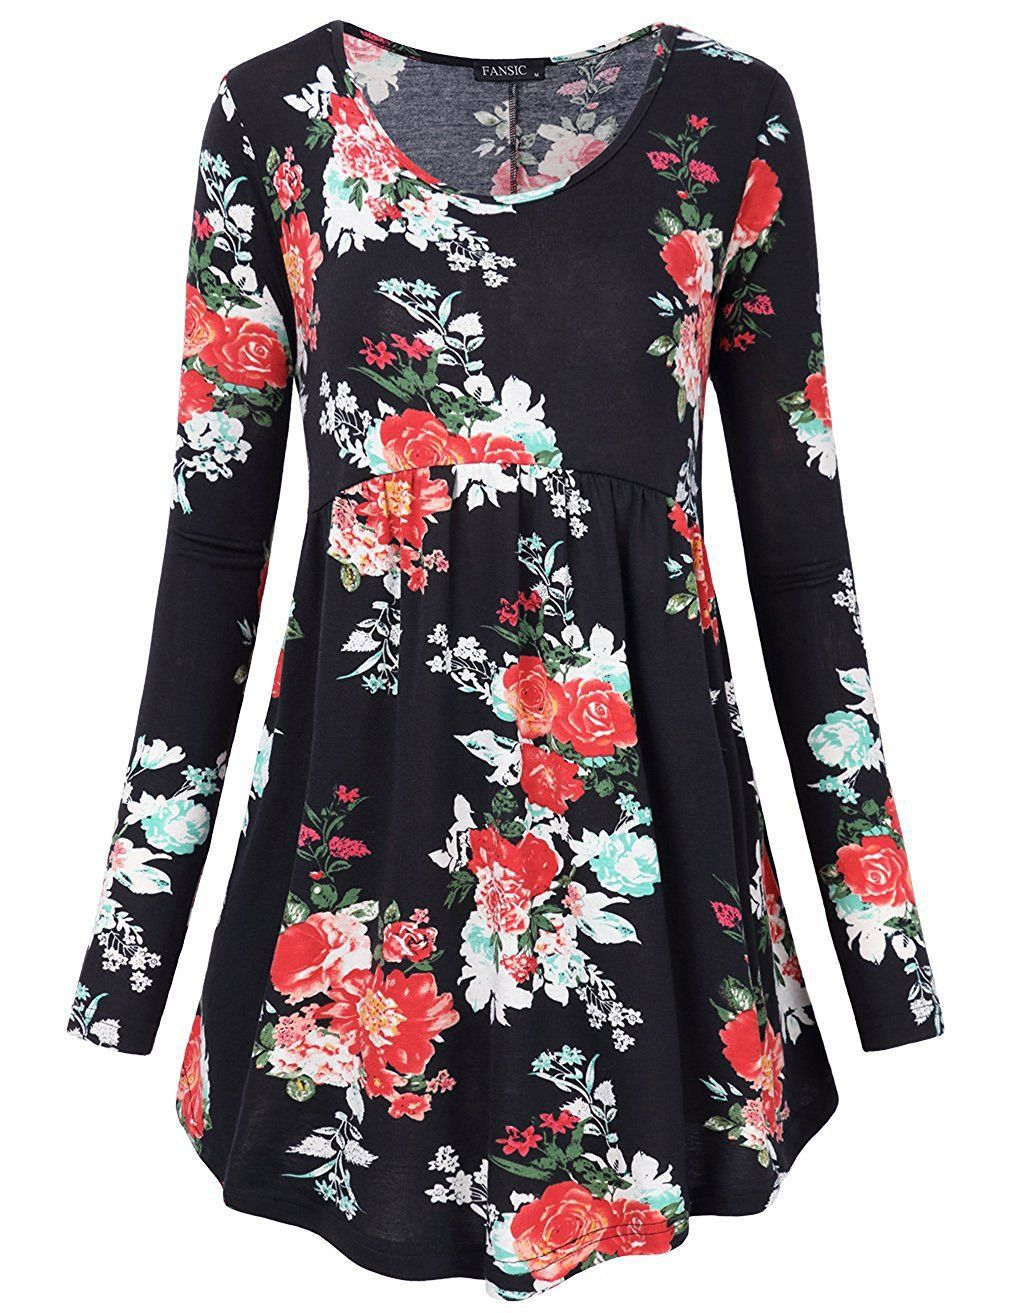 4f96668ec1f FANSIC Women Floral Tops,Long Sleeve Empire Waist A Line Flowy Tunics  Blouses